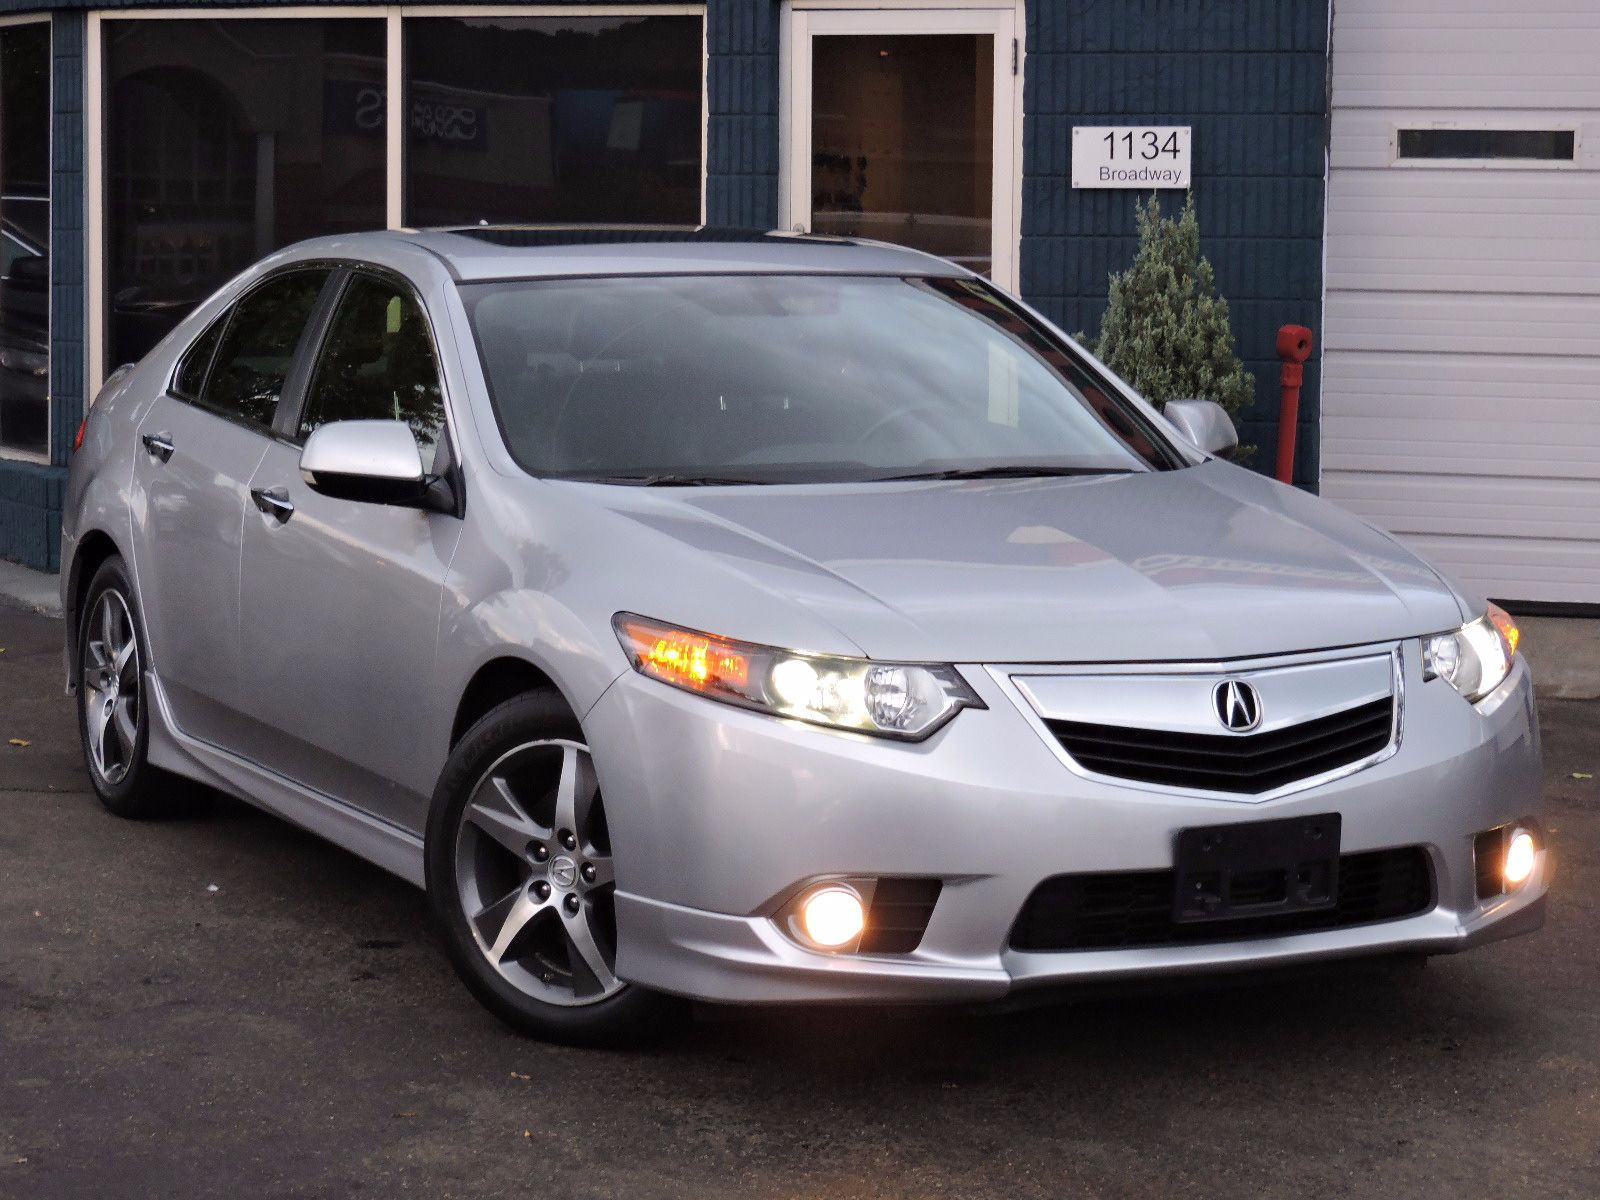 2014 Acura TSX 6 Speed - Special Edition